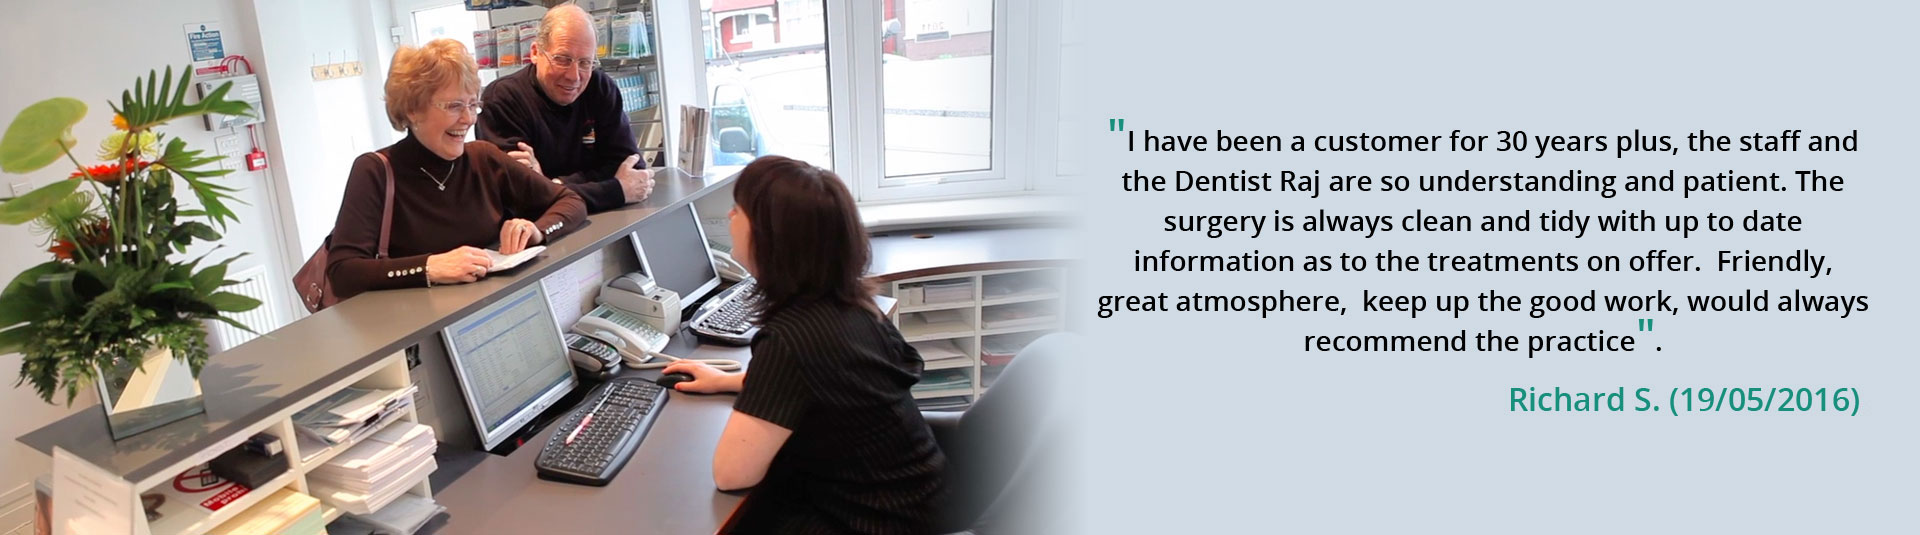 Dental Testimonials - Chingford Mount Dental Practice